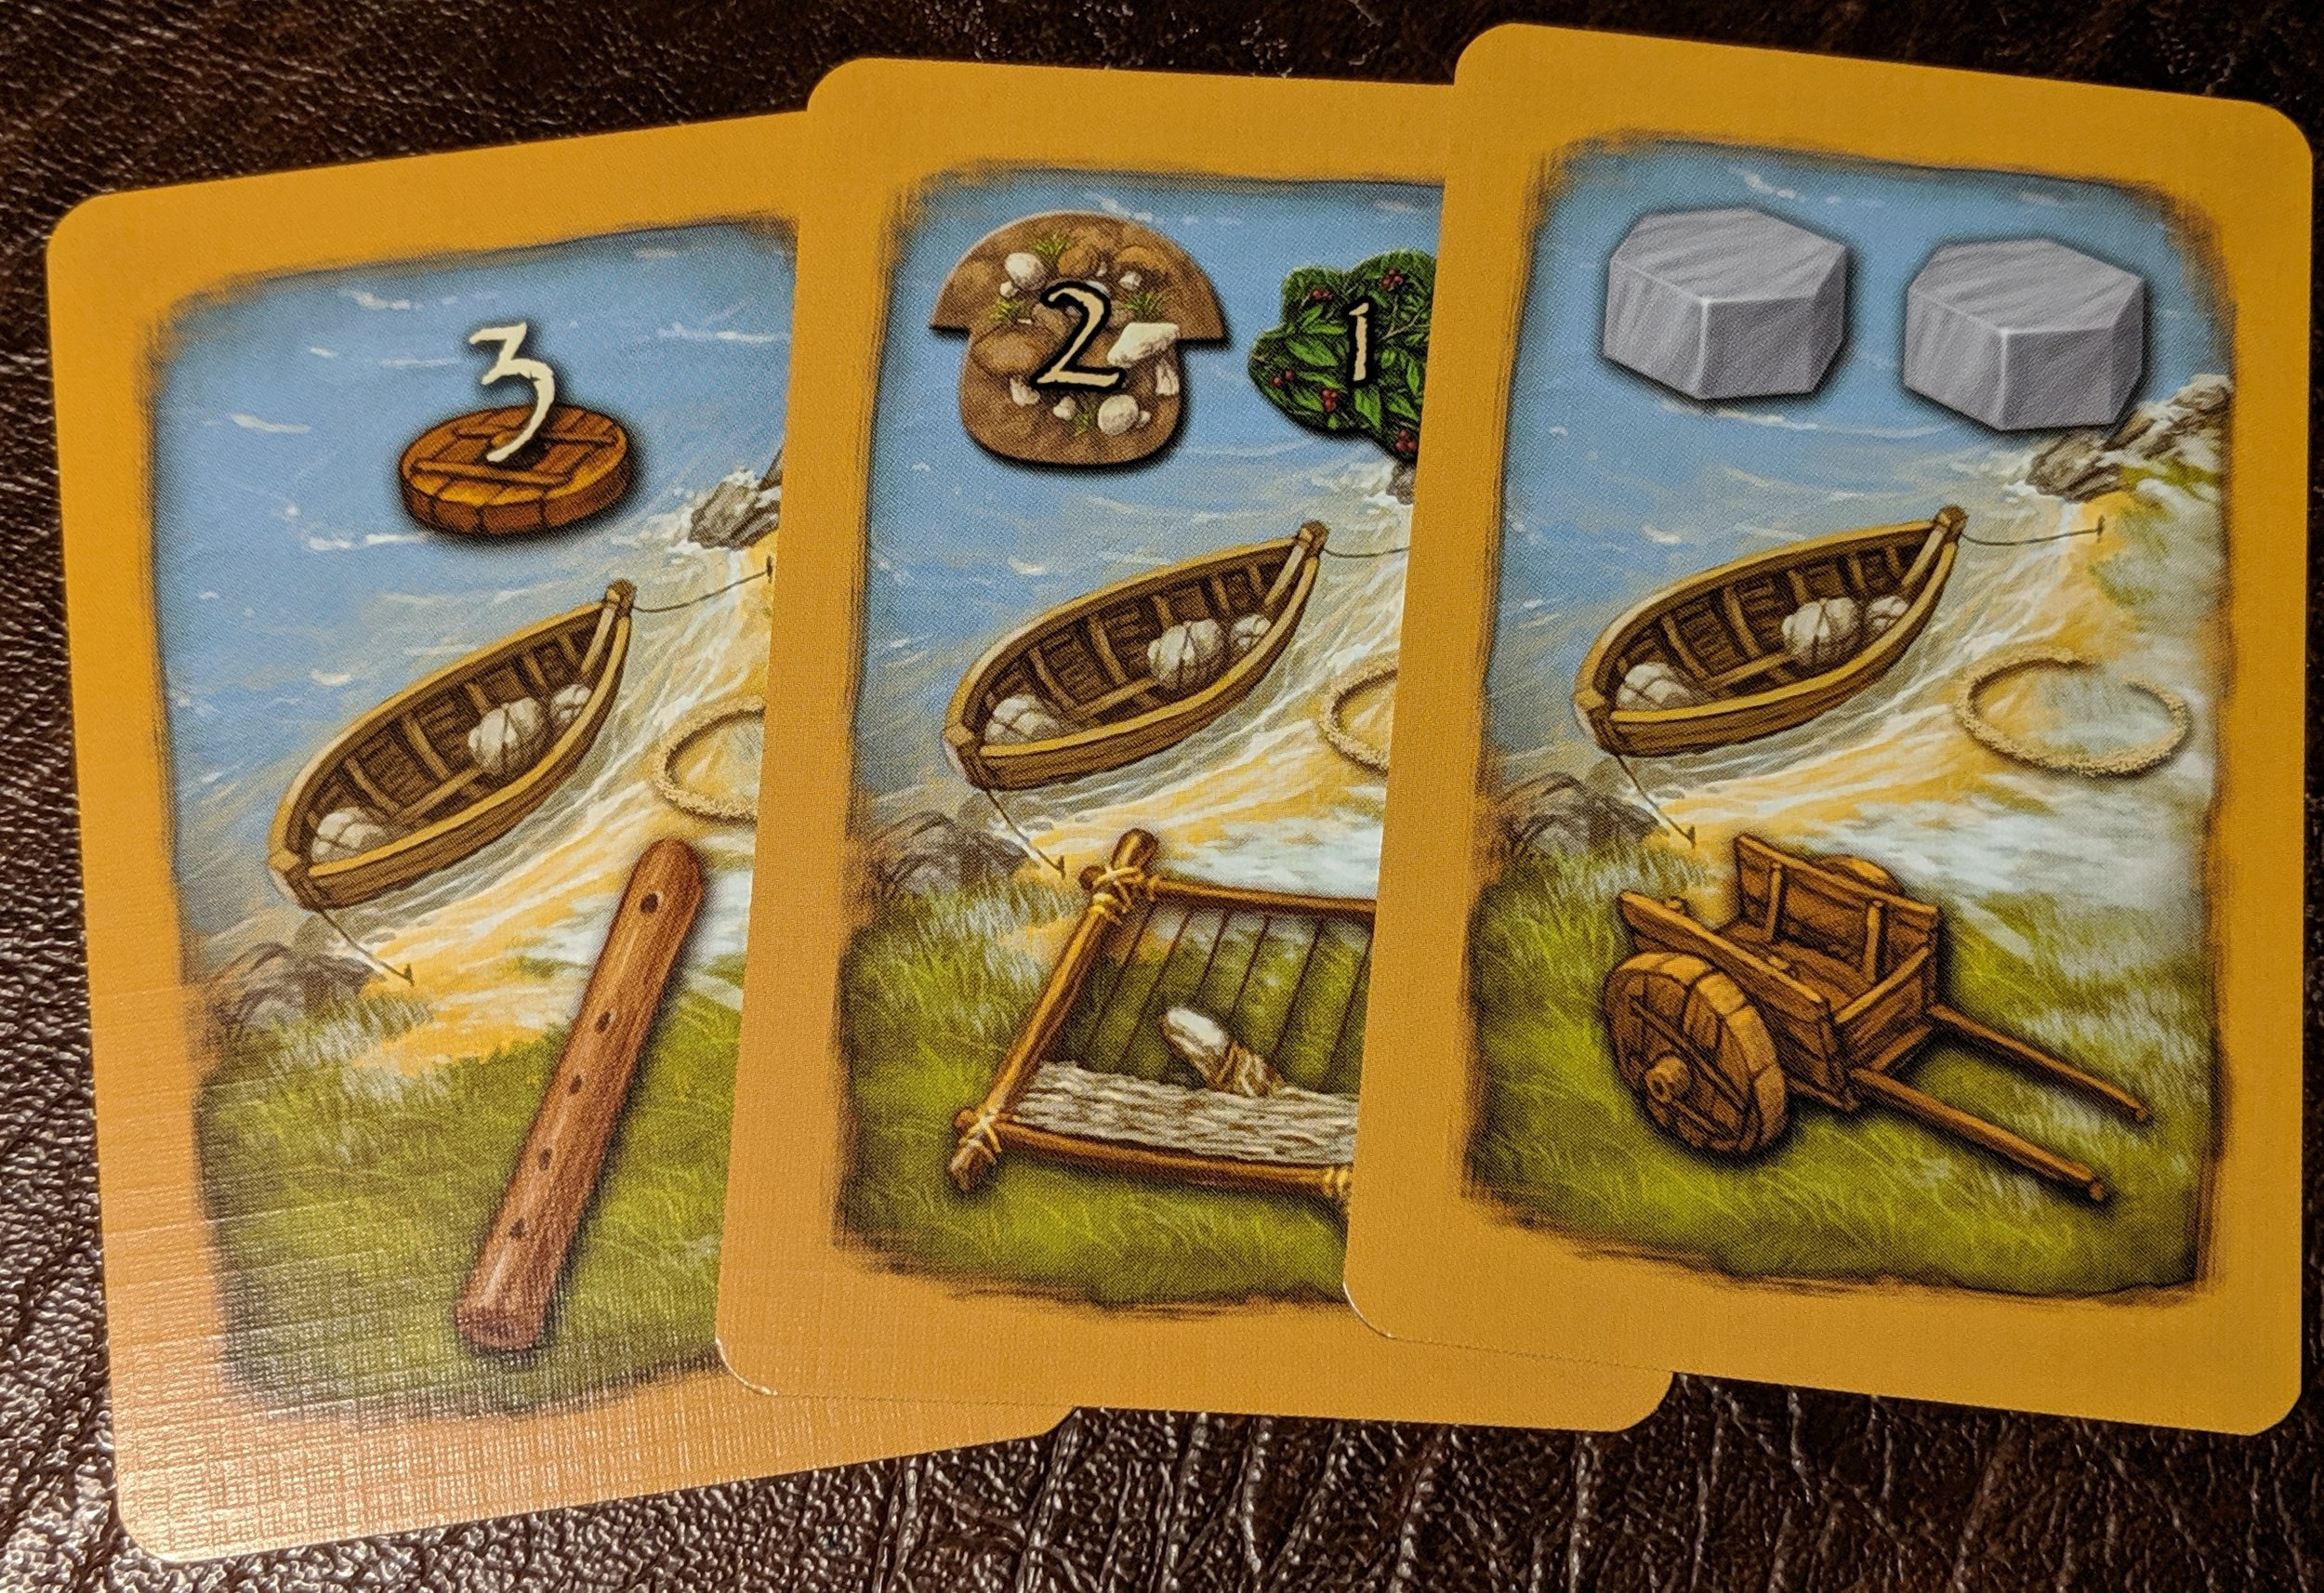 Civilization cards. Immediate bonus on top, with a long term reward for collecting the unique symbols.